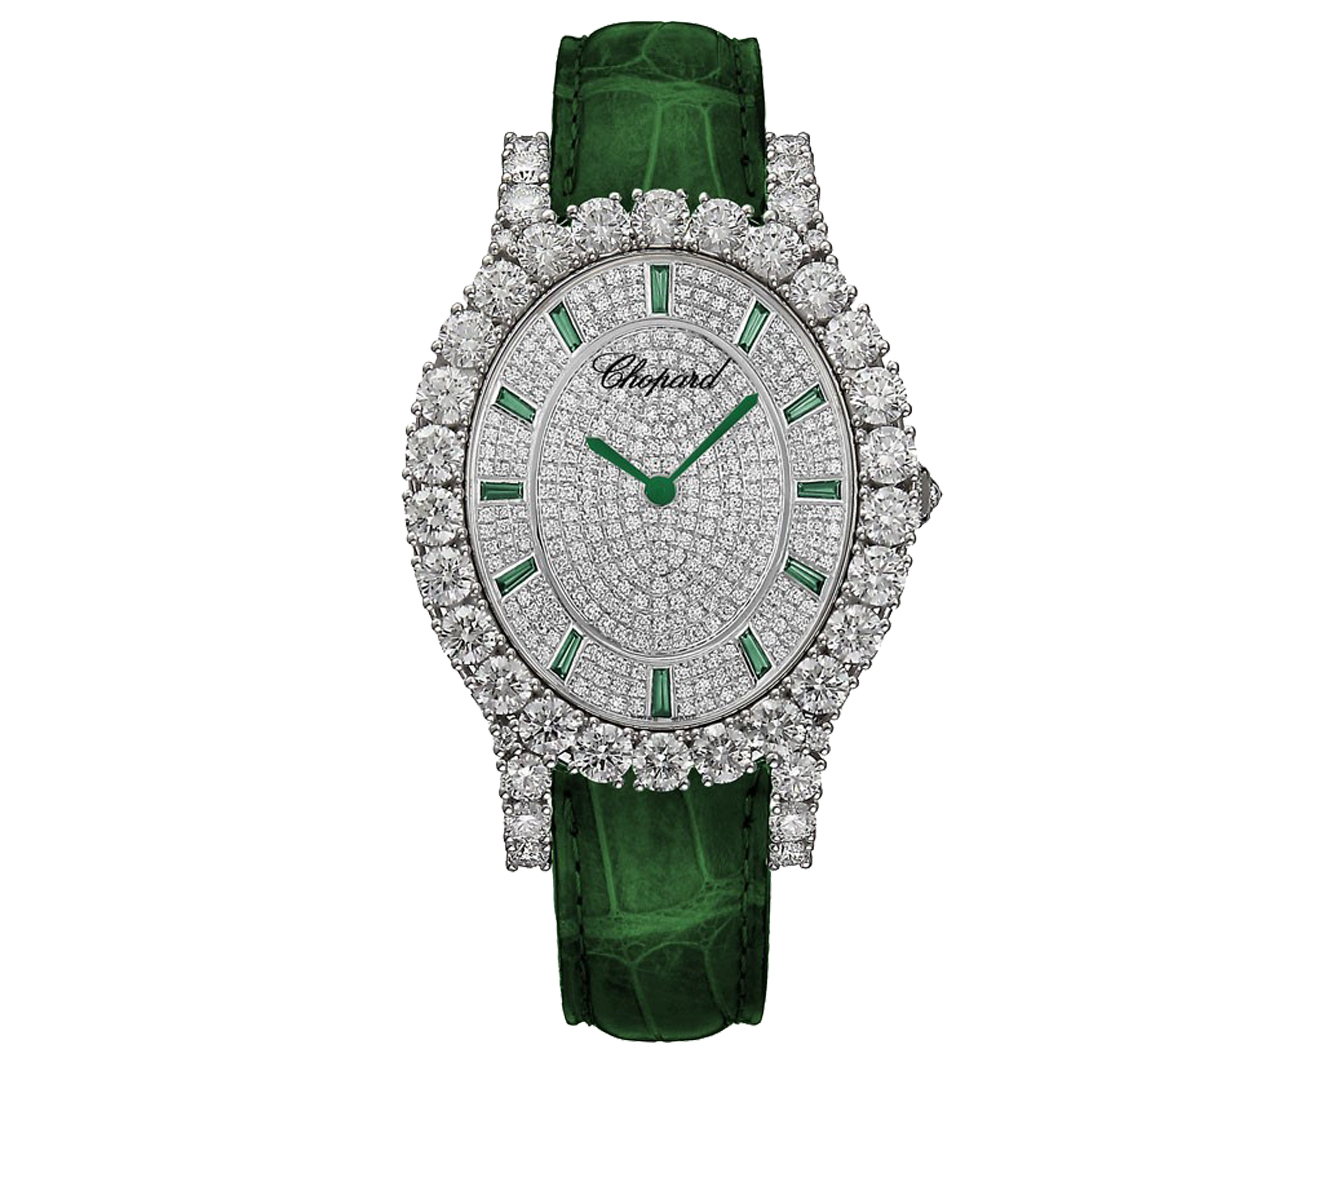 Часы White Gold Pave Green Chopard L'Heure du Diamant 139383-1033 - фото 1 – Mercury